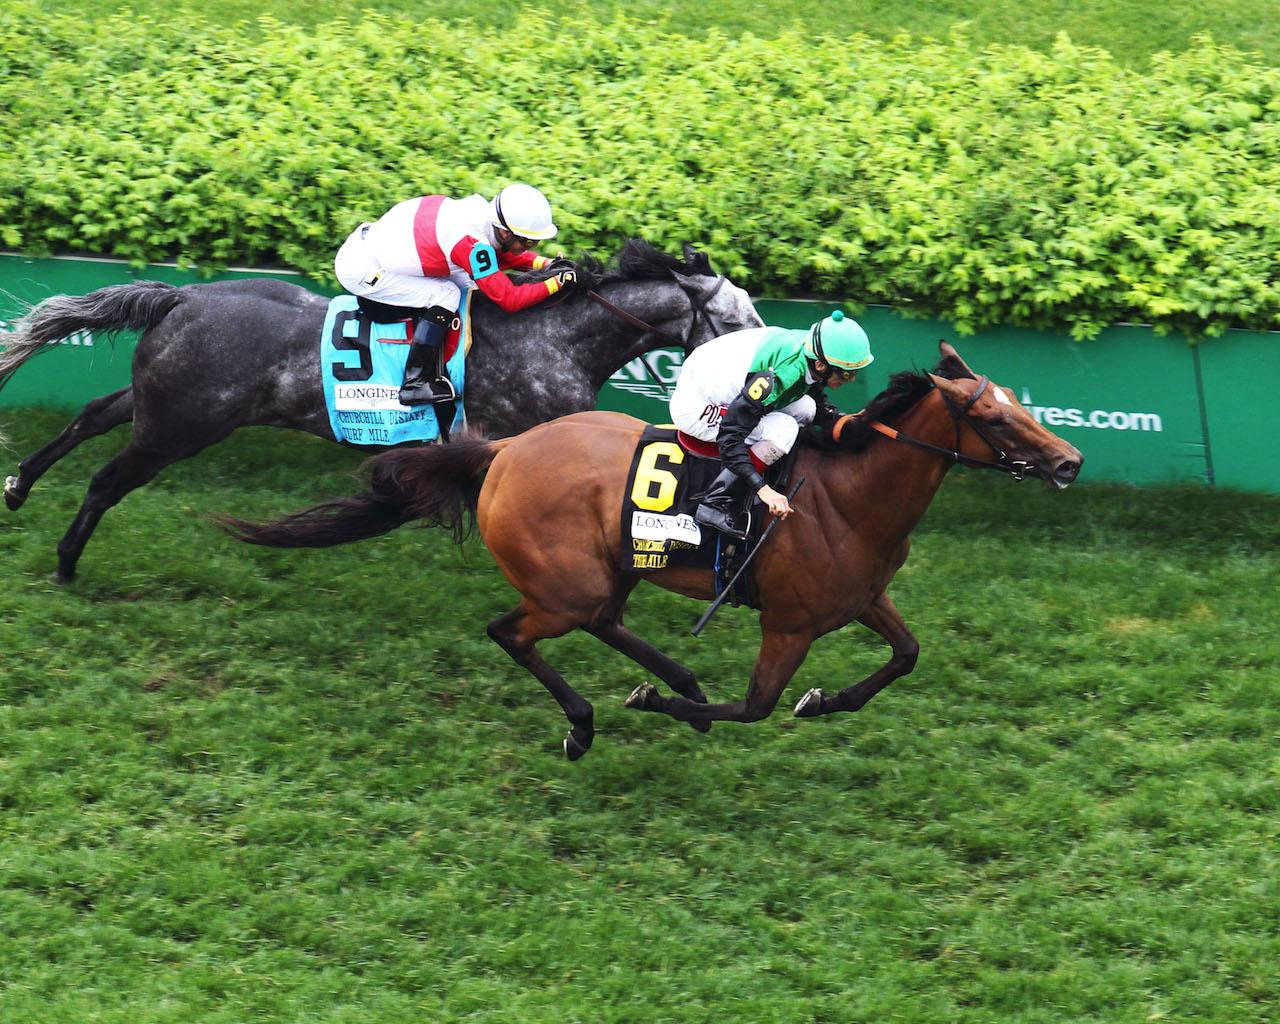 PROCTOR'S LEDGE - The Longines Churchill Distaff Turf Mile G2 - 33rd Running - 05-05-18 - R07 - CD - Aerial Finish 01